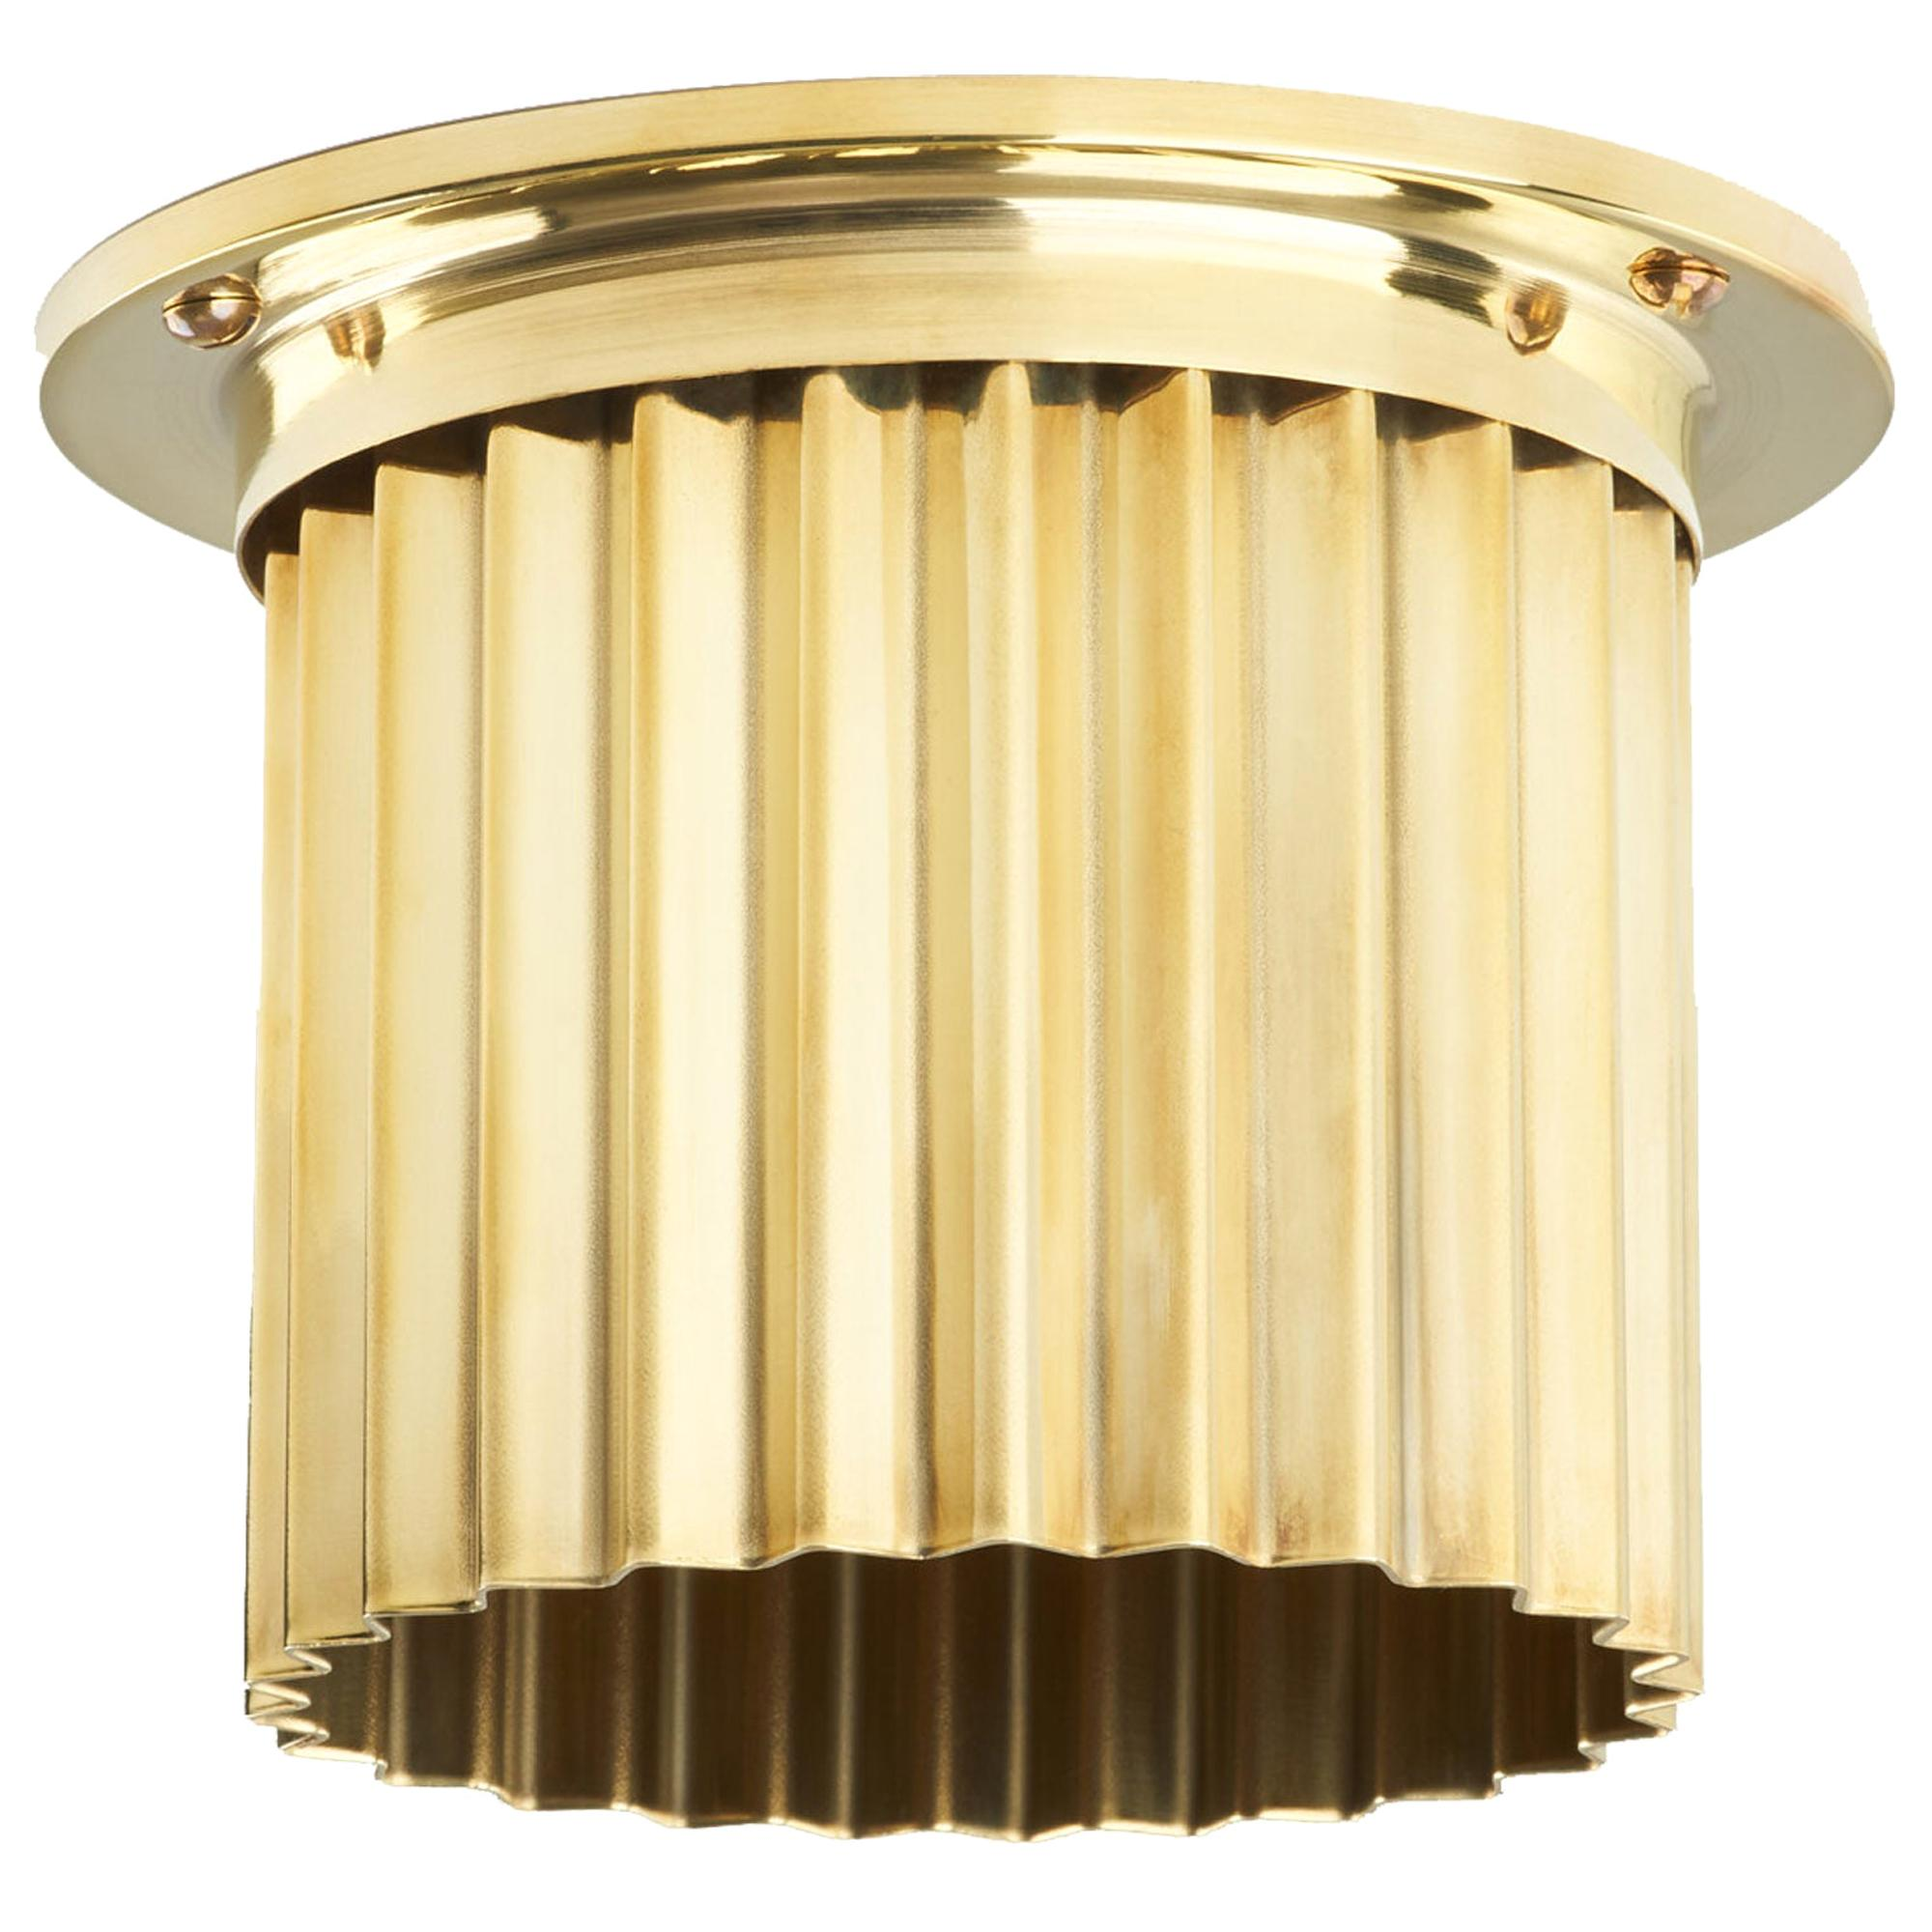 And Objects Littleton Spot Diffuser, Polished Brass Recessed Spot Light Shade